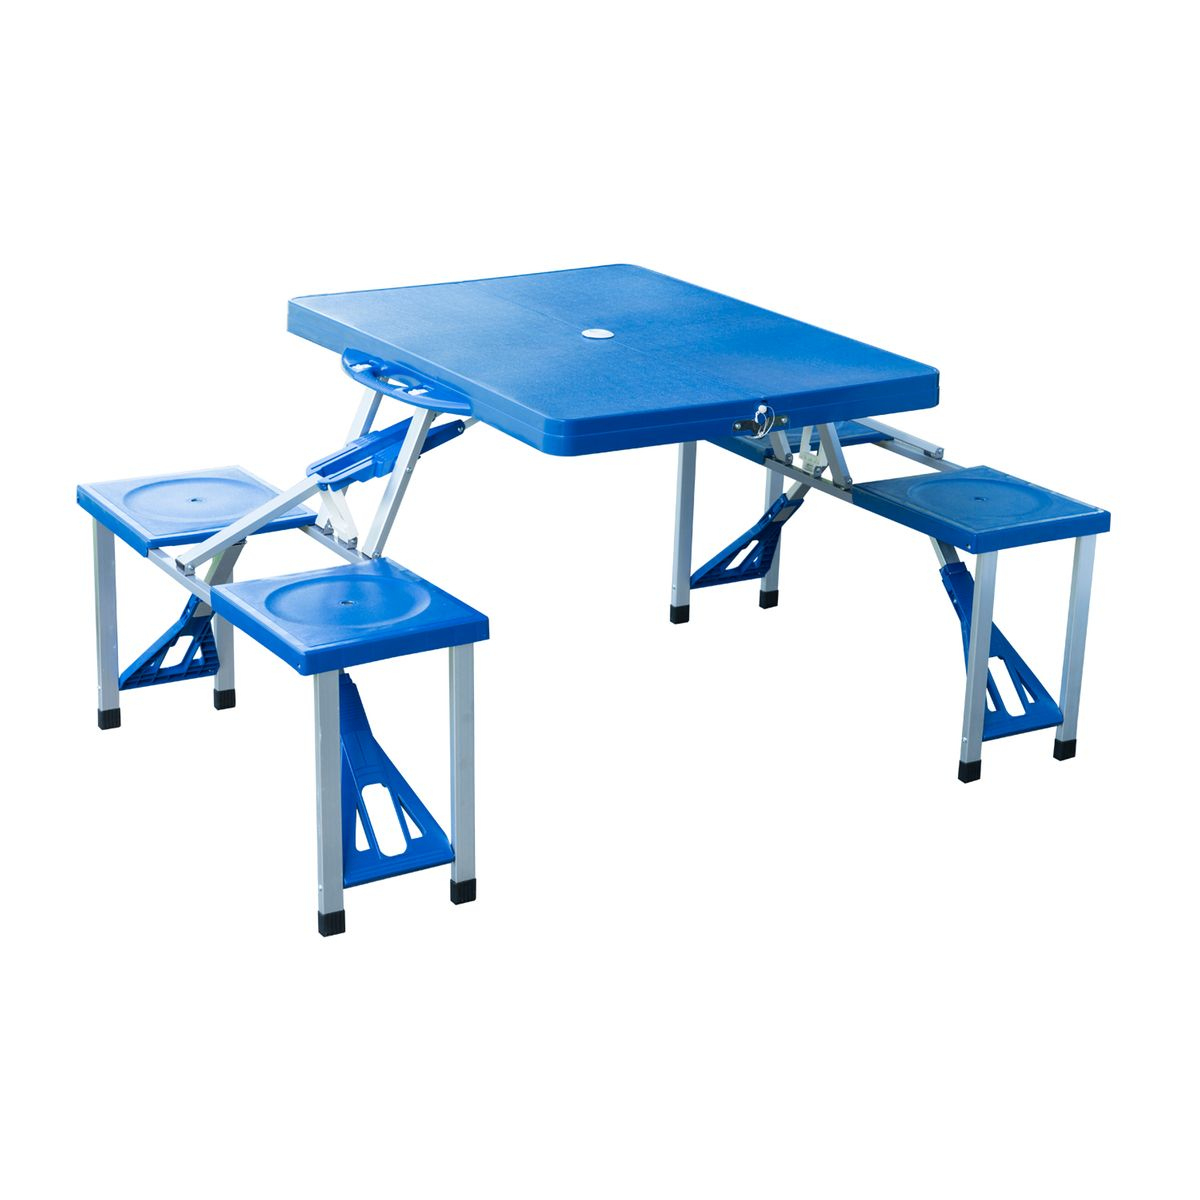 chaise pliante camping i table topiwall concernant chaise pliante camping i table topiwall